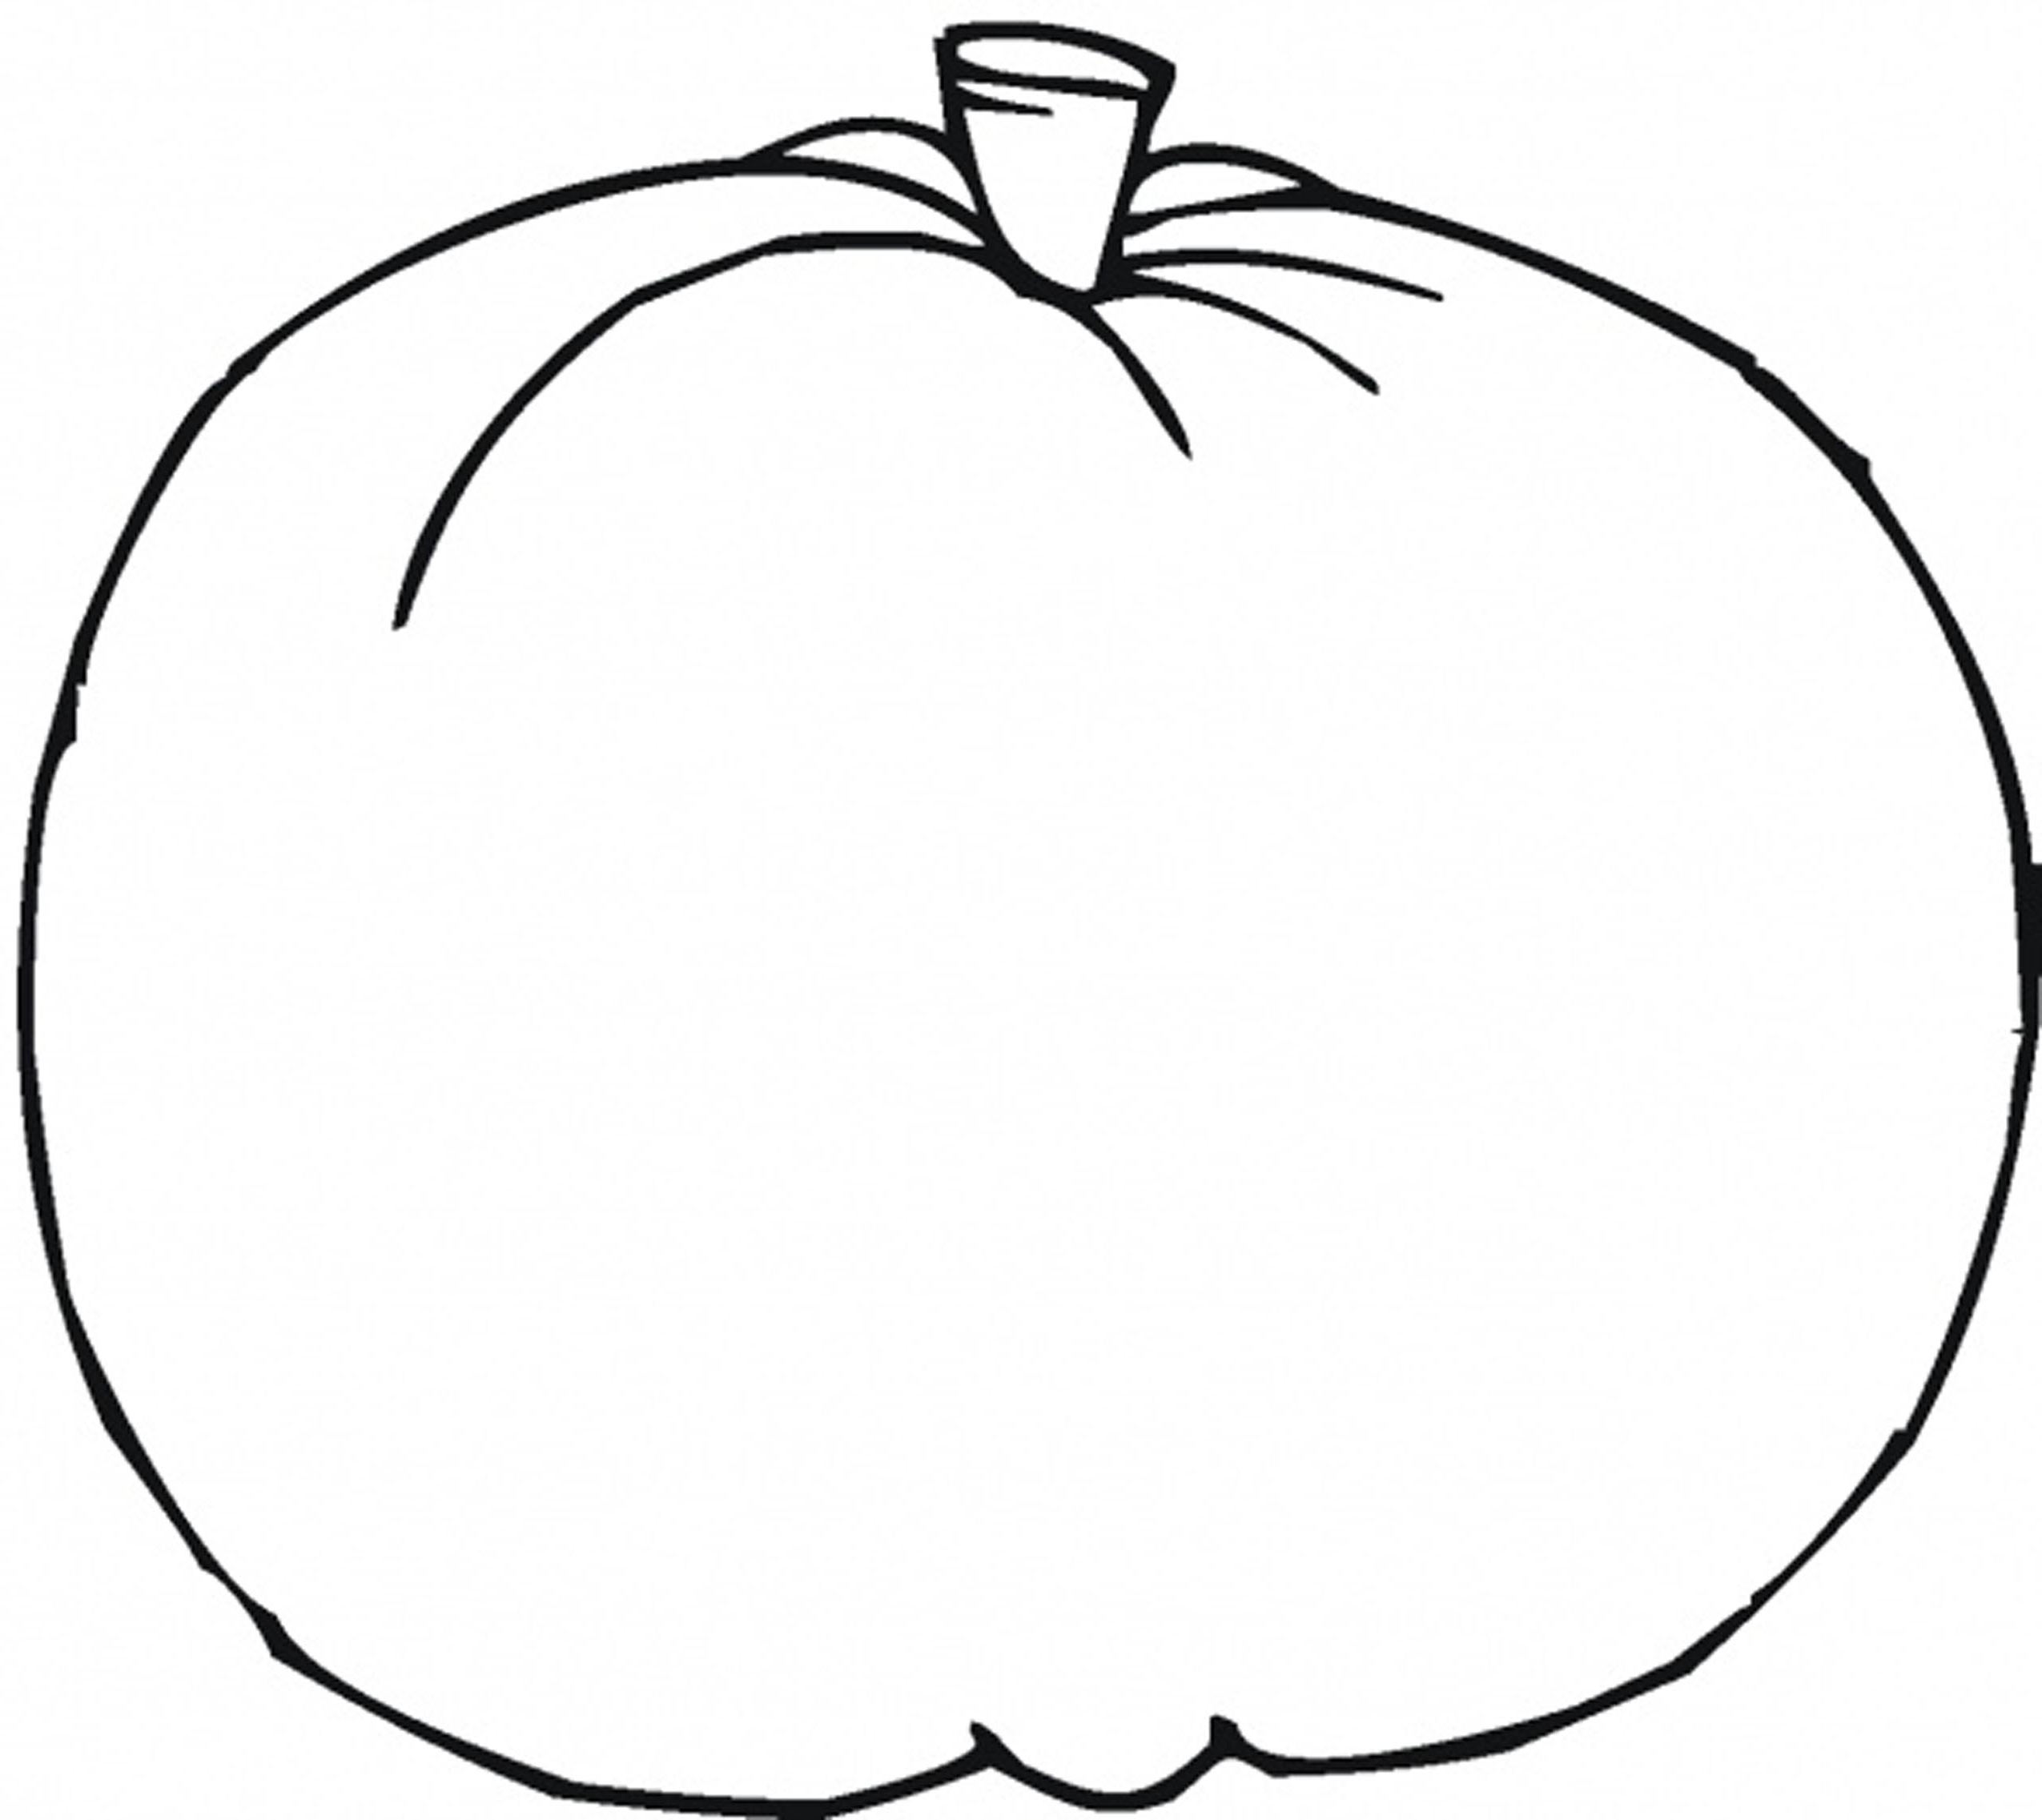 Free Pumpkin Drawing At Getdrawings Com Free For Personal Use Free